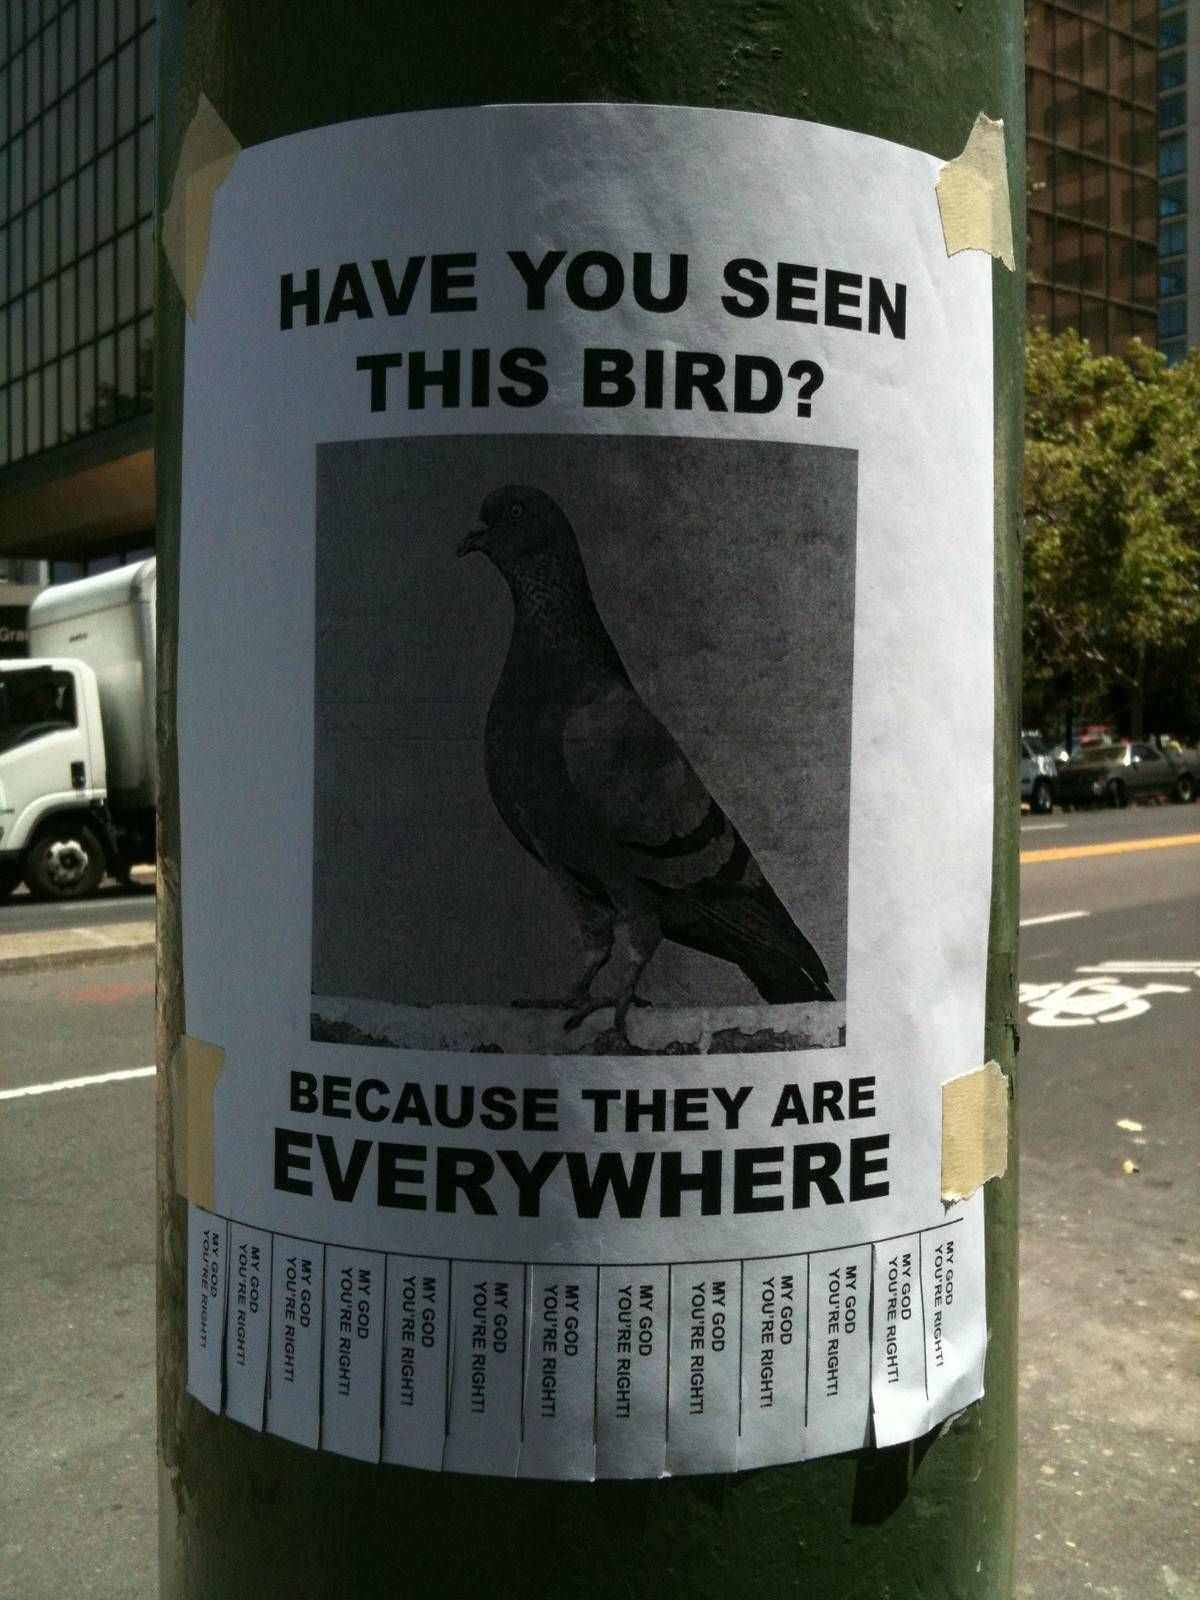 A sign points out that pigeons are everywhere.